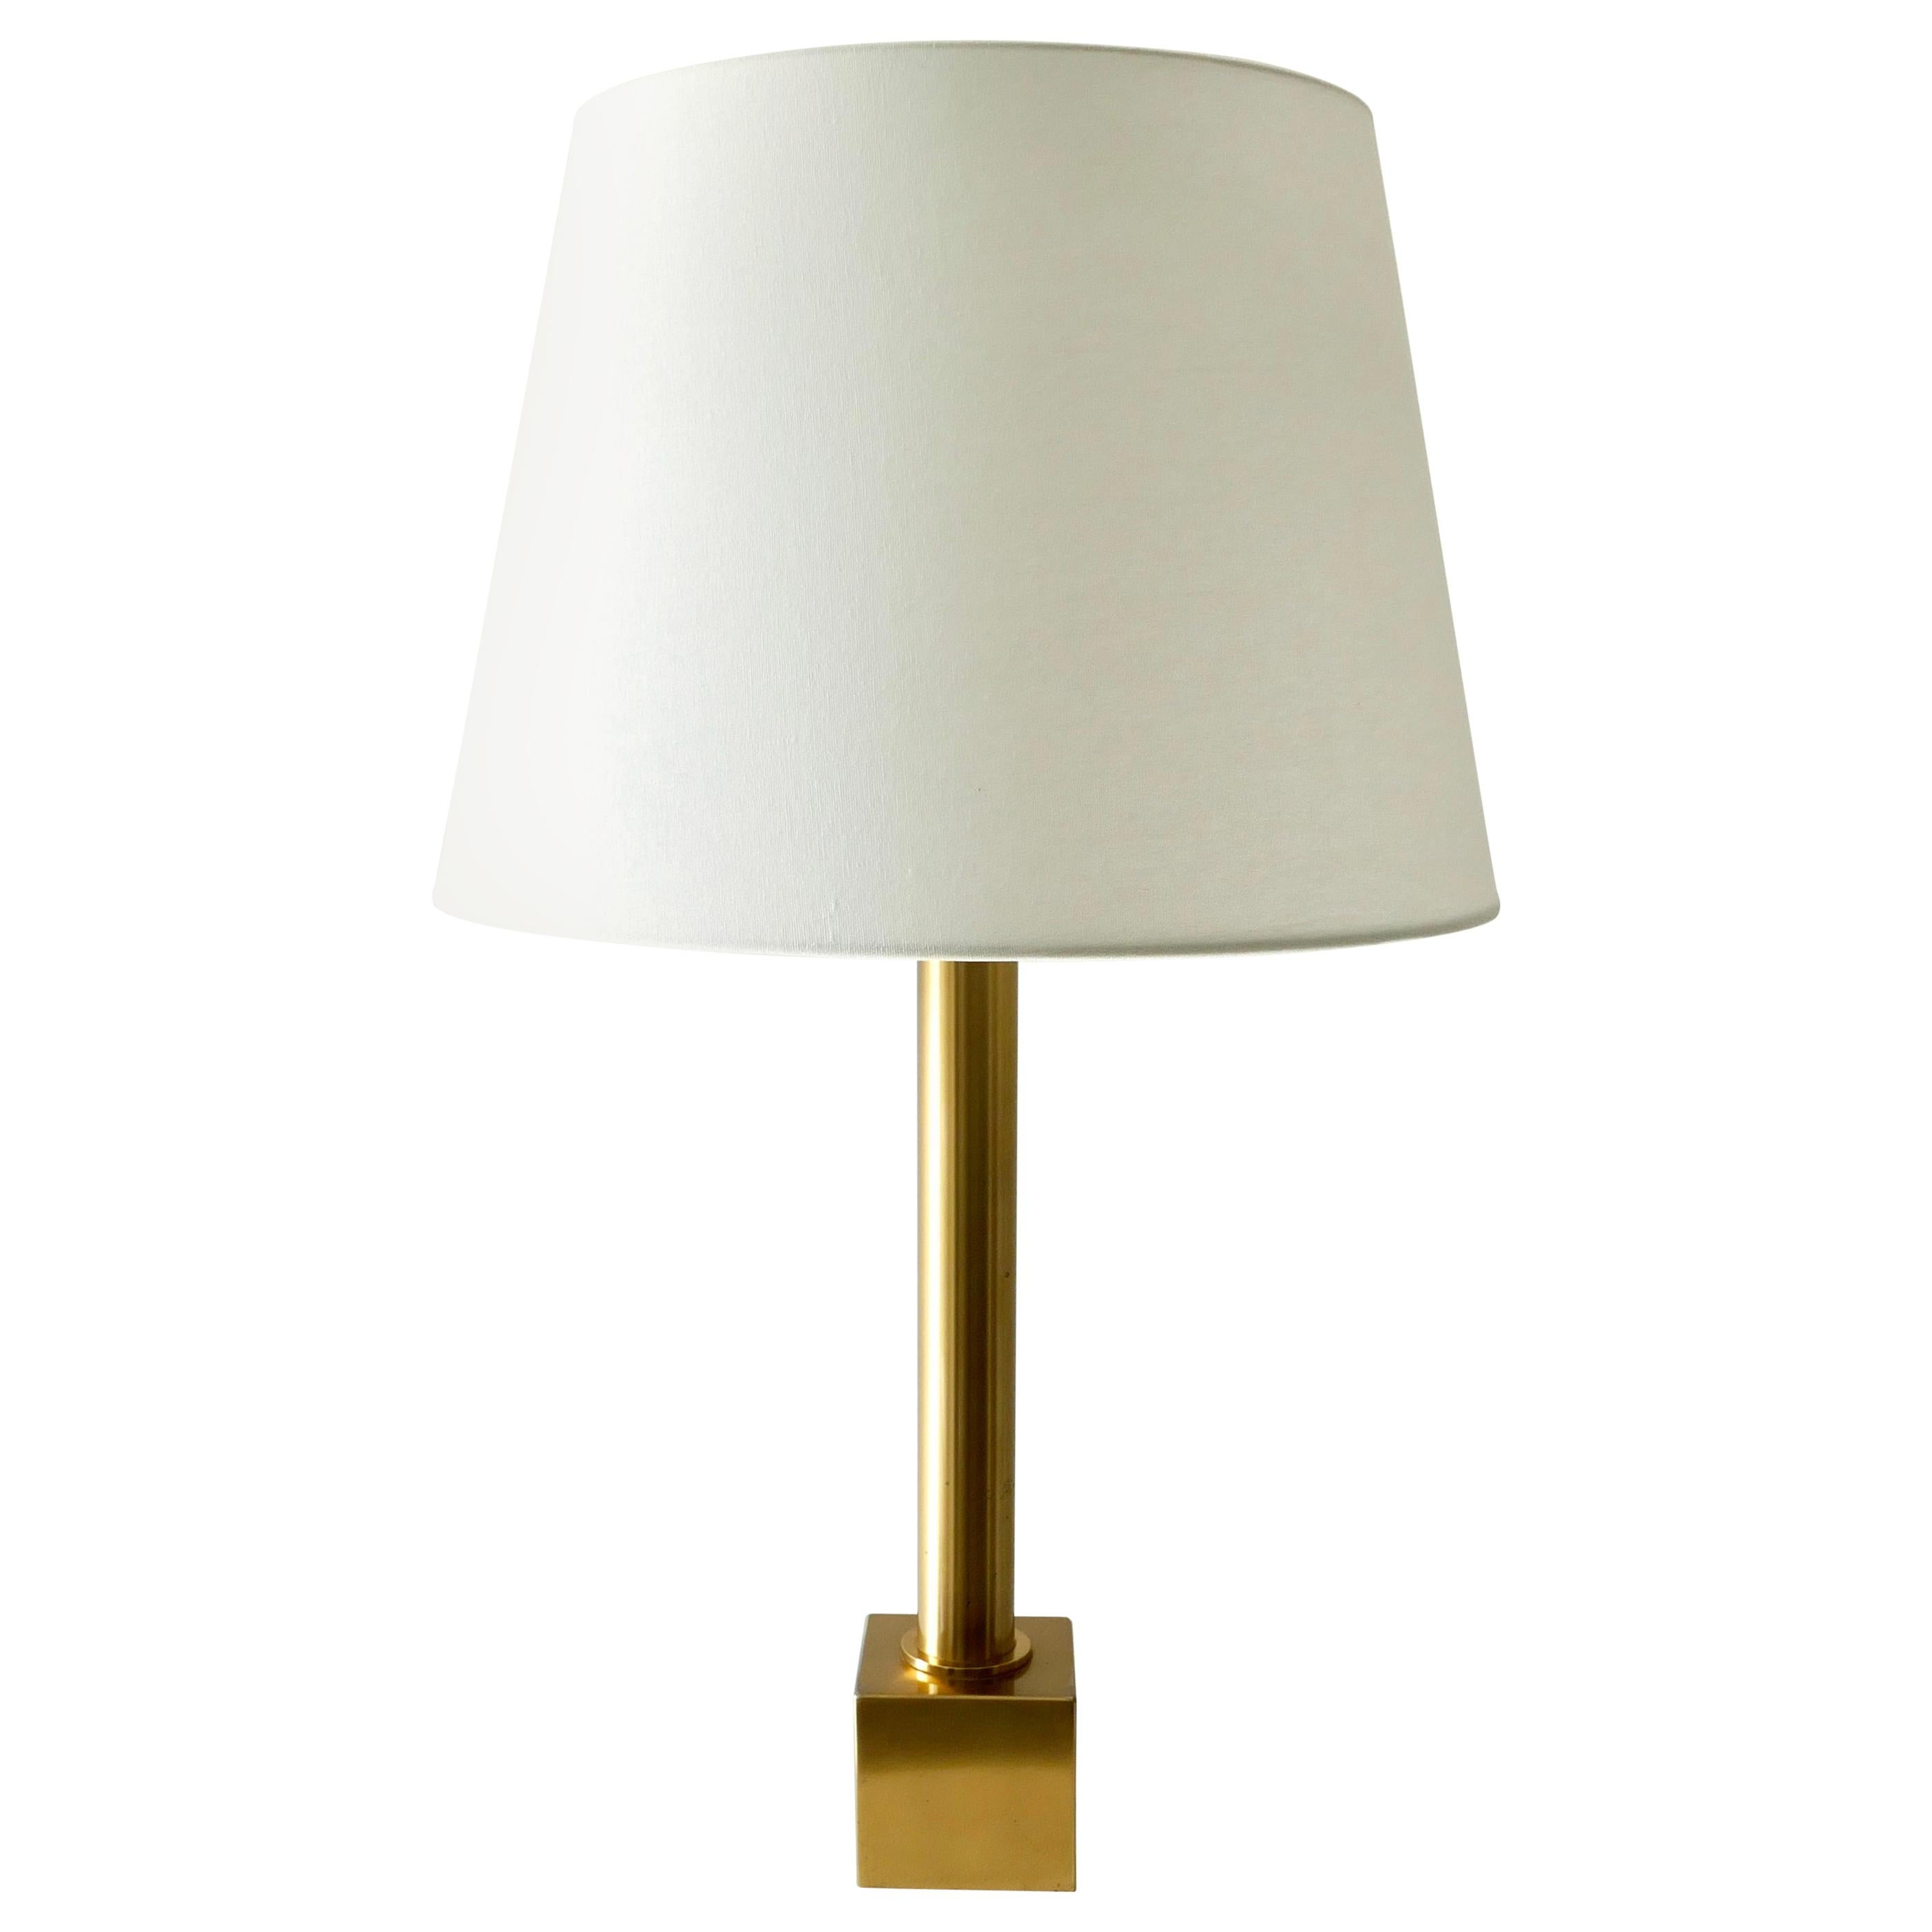 Large Brass Table Lamp with White Lamp Shade, Germany, 1970s